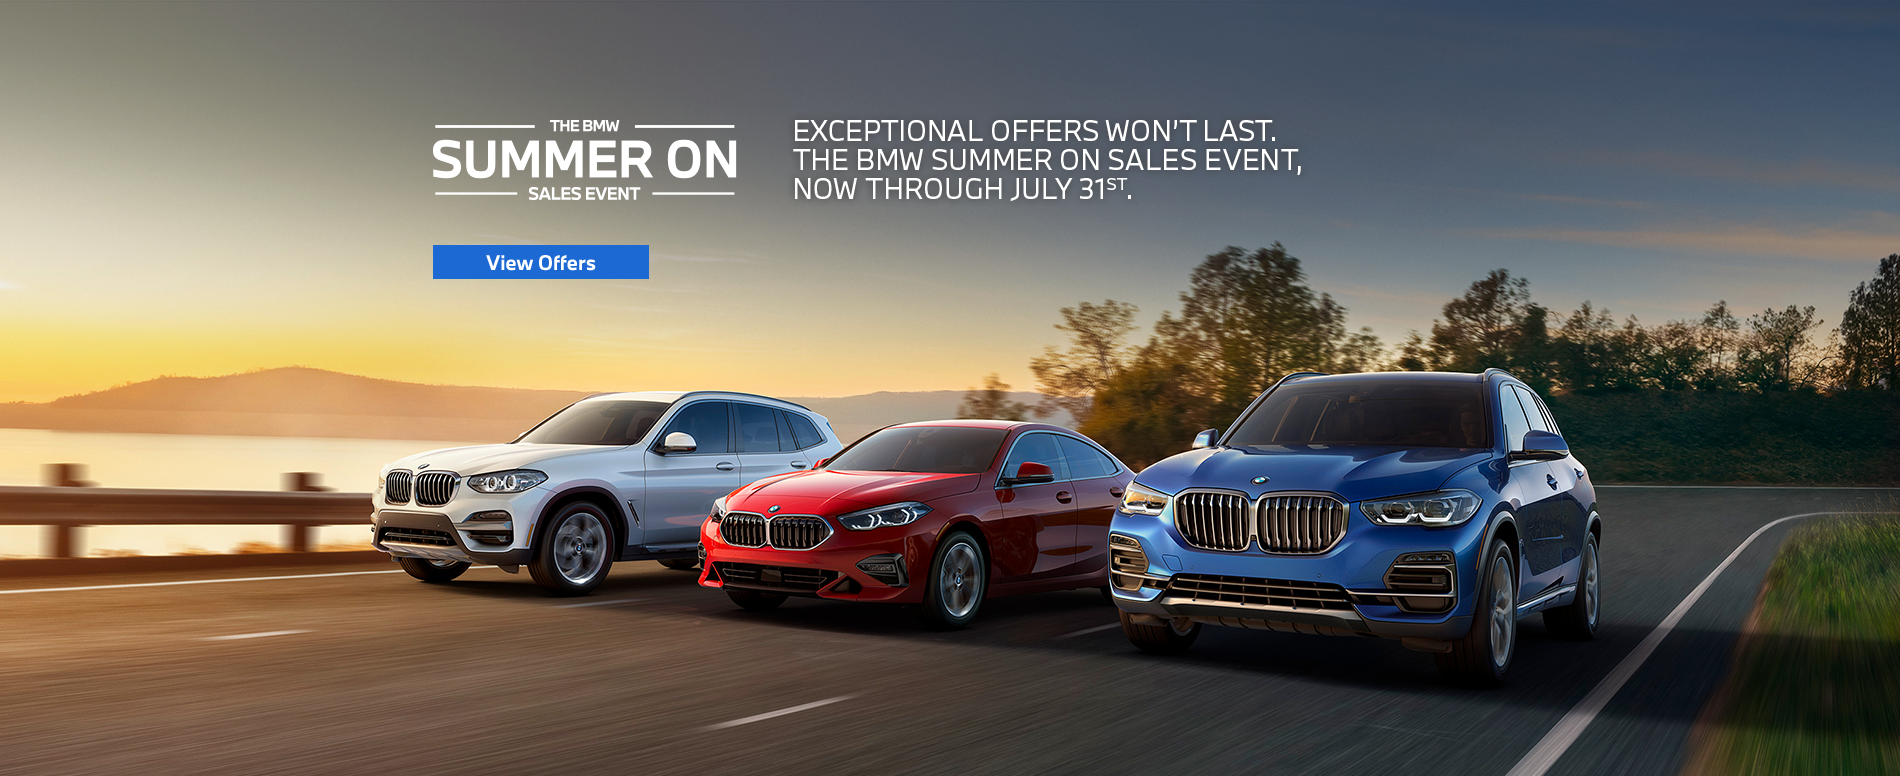 Summer On Sales Event Now through July 31st